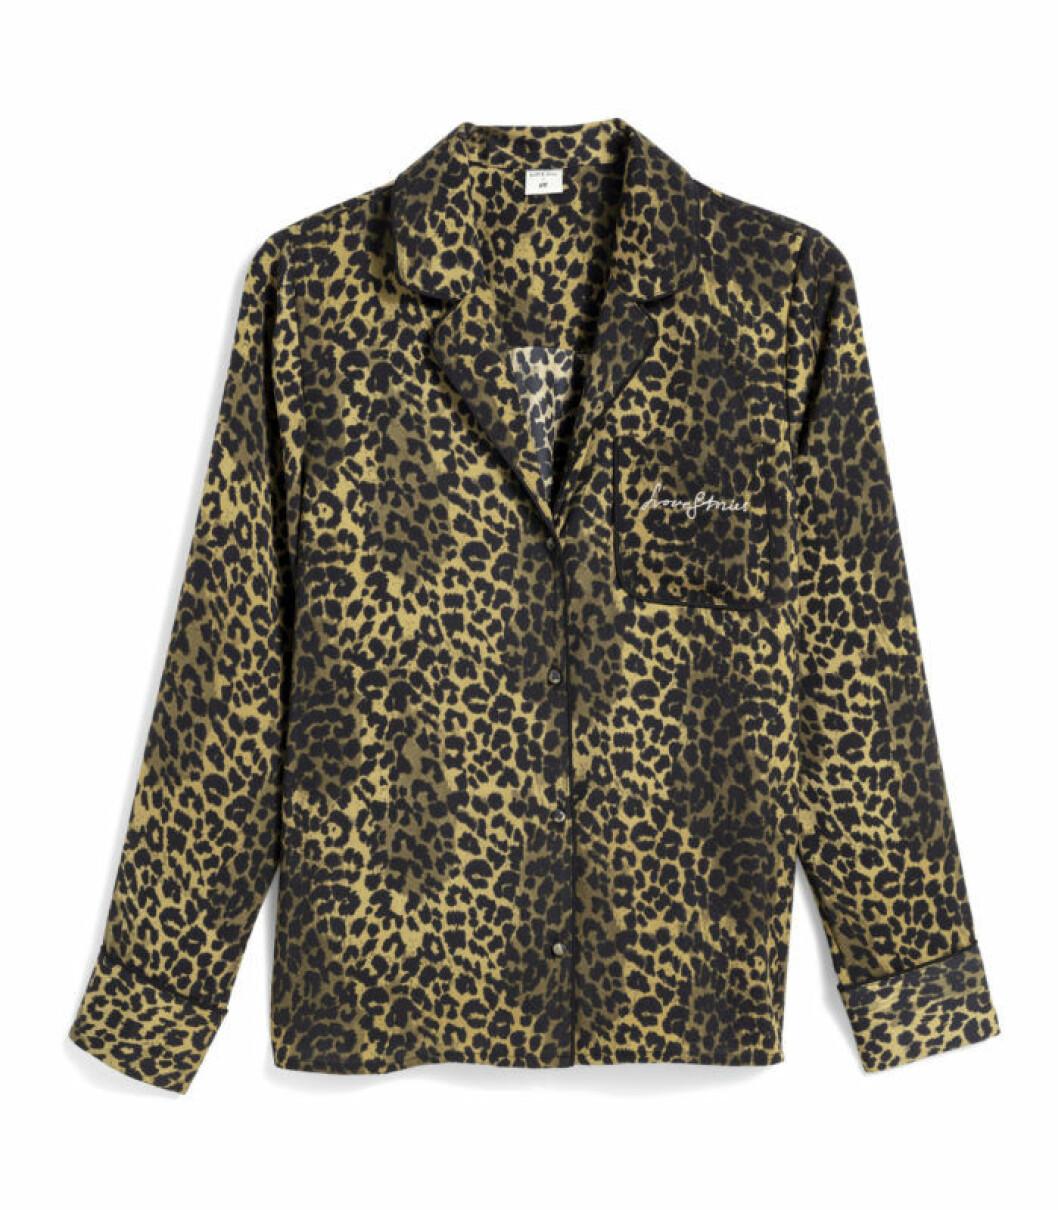 H&M x Love Stories pyjamasskjorta i leopardmönster